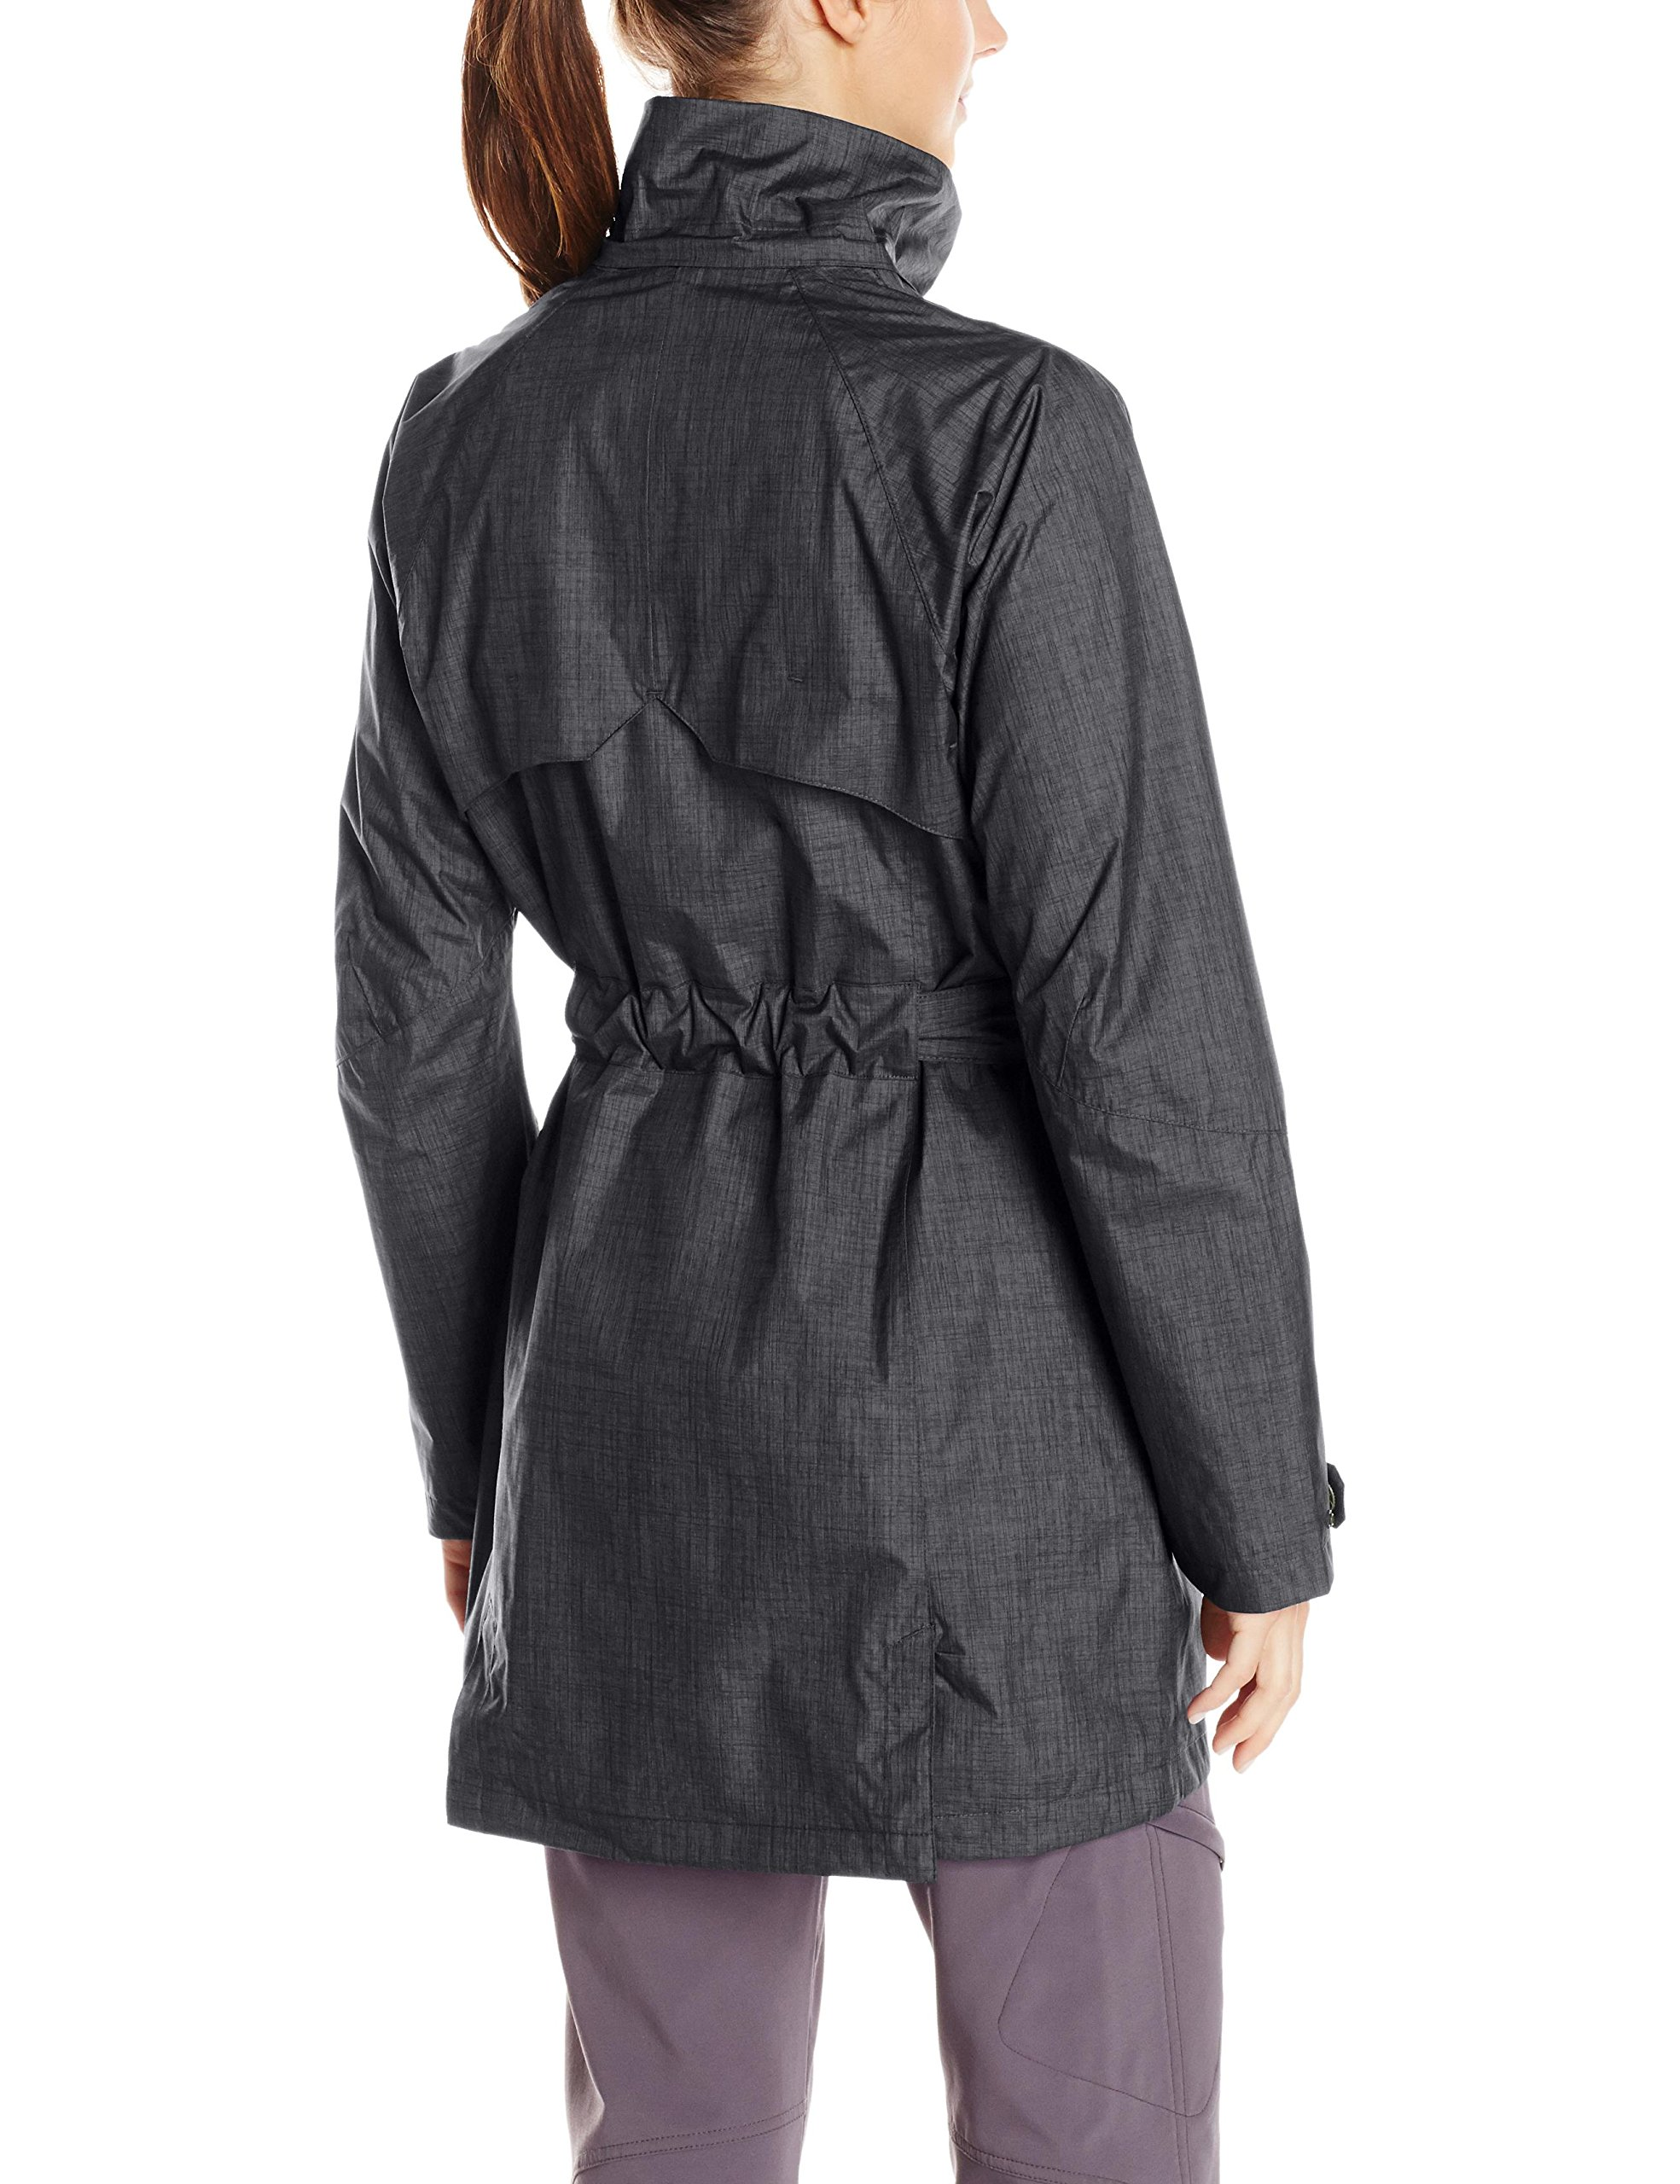 Columbia Women's Steal Your Thunder Jacket, Medium, Black by Columbia (Image #7)